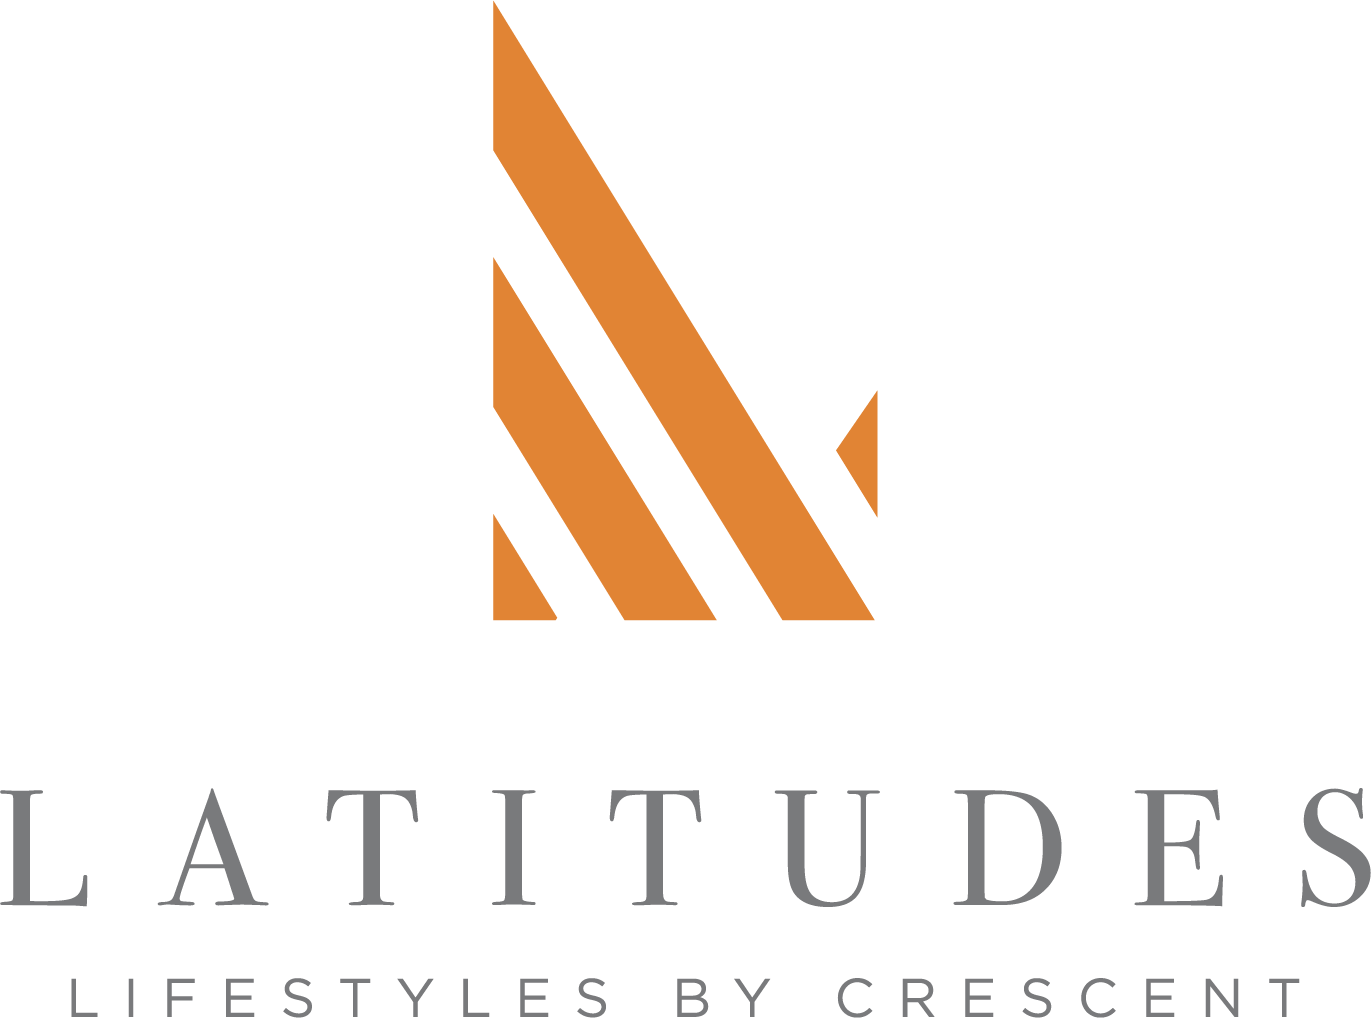 Latitudes: Lifestyles by Crescent Hotels & Resorts